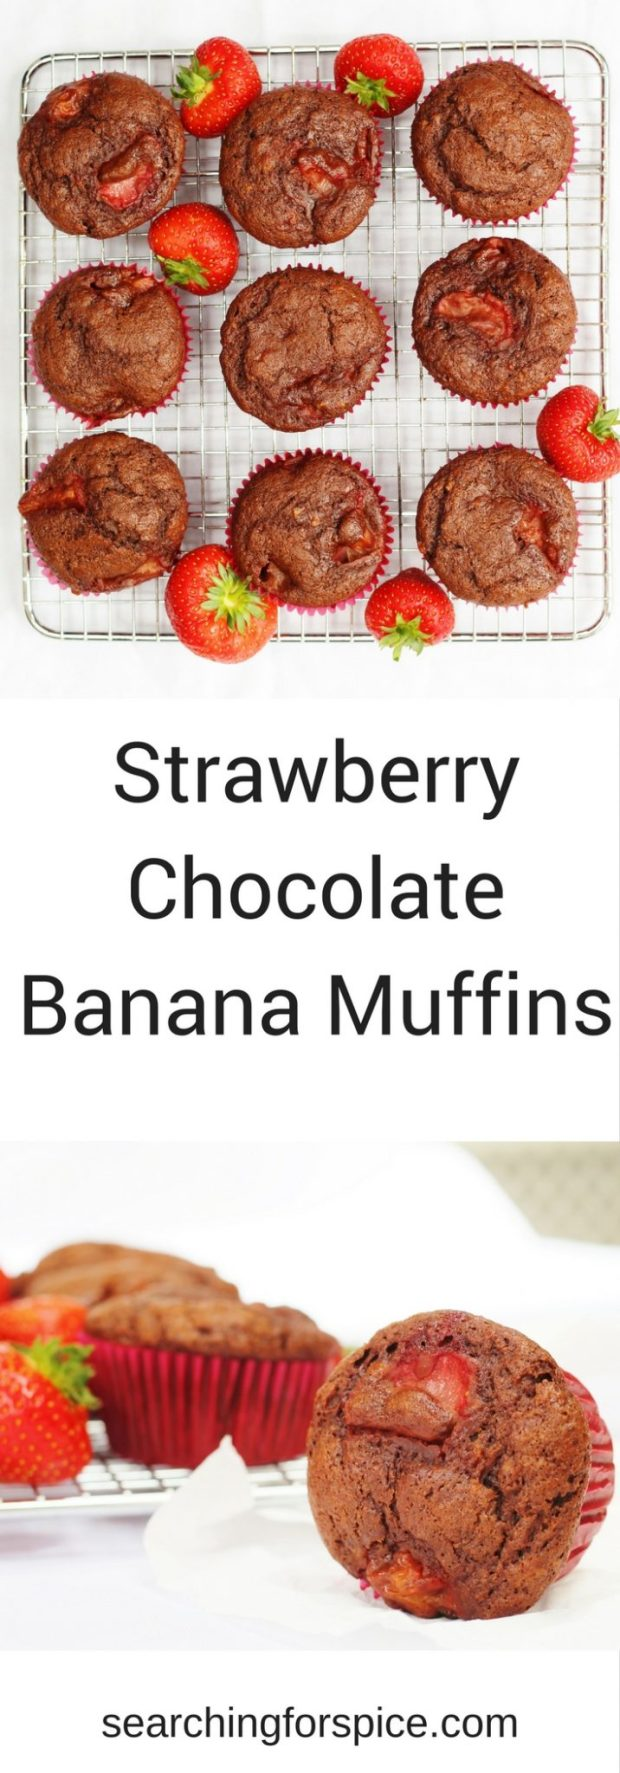 These strawberry chocolate banana muffins make a healthy sweet treat for an afternoon snack or dessert. Serve warm with yoghurt, cream or custard or delicious cold too. It's a recipe you and your kids will love.